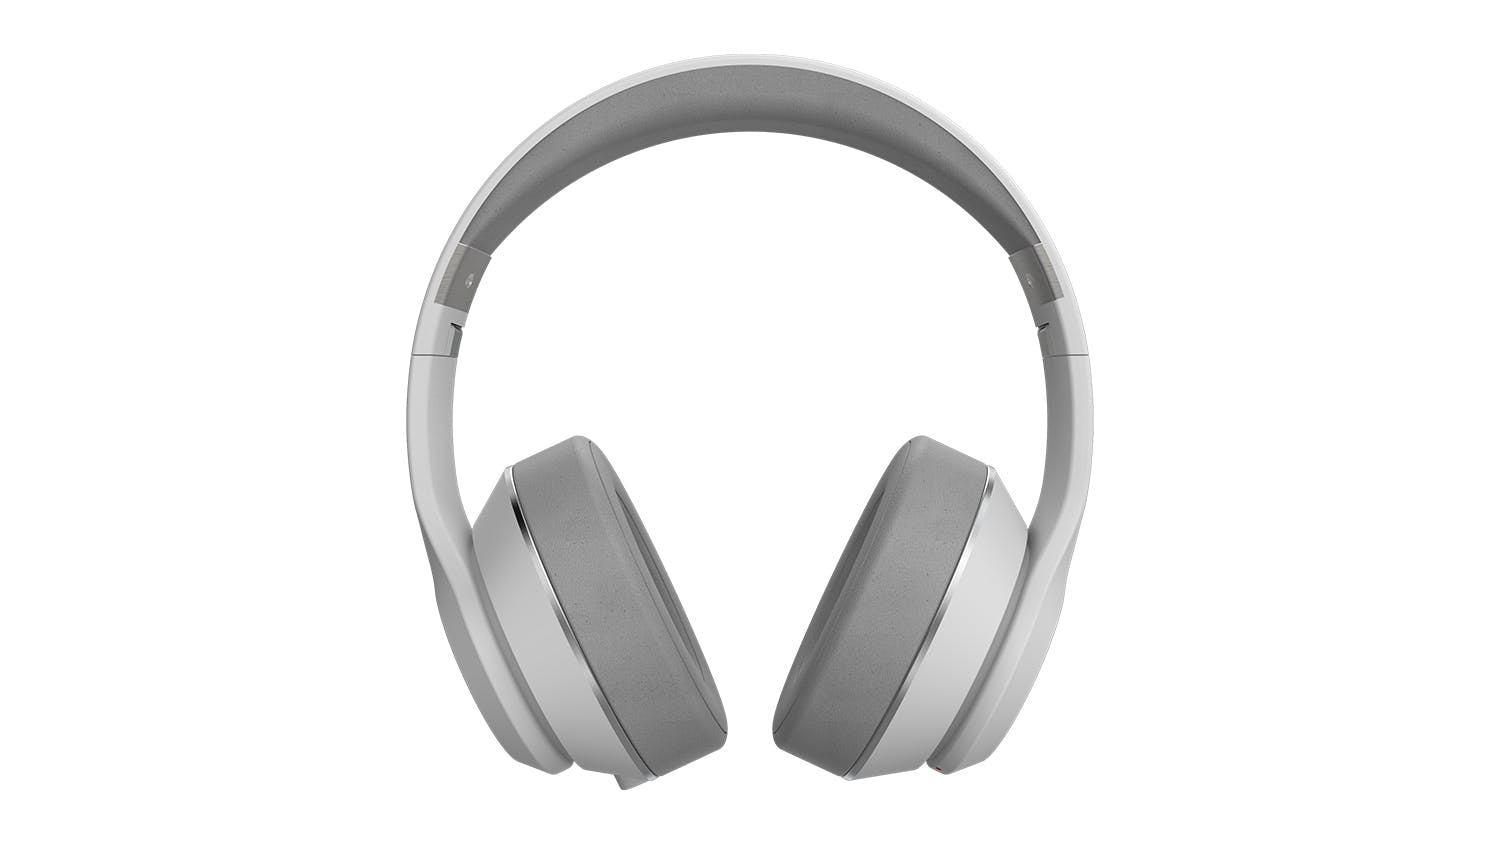 iFrogz Impulse 2 Wireless Over-Ear Headphones - White